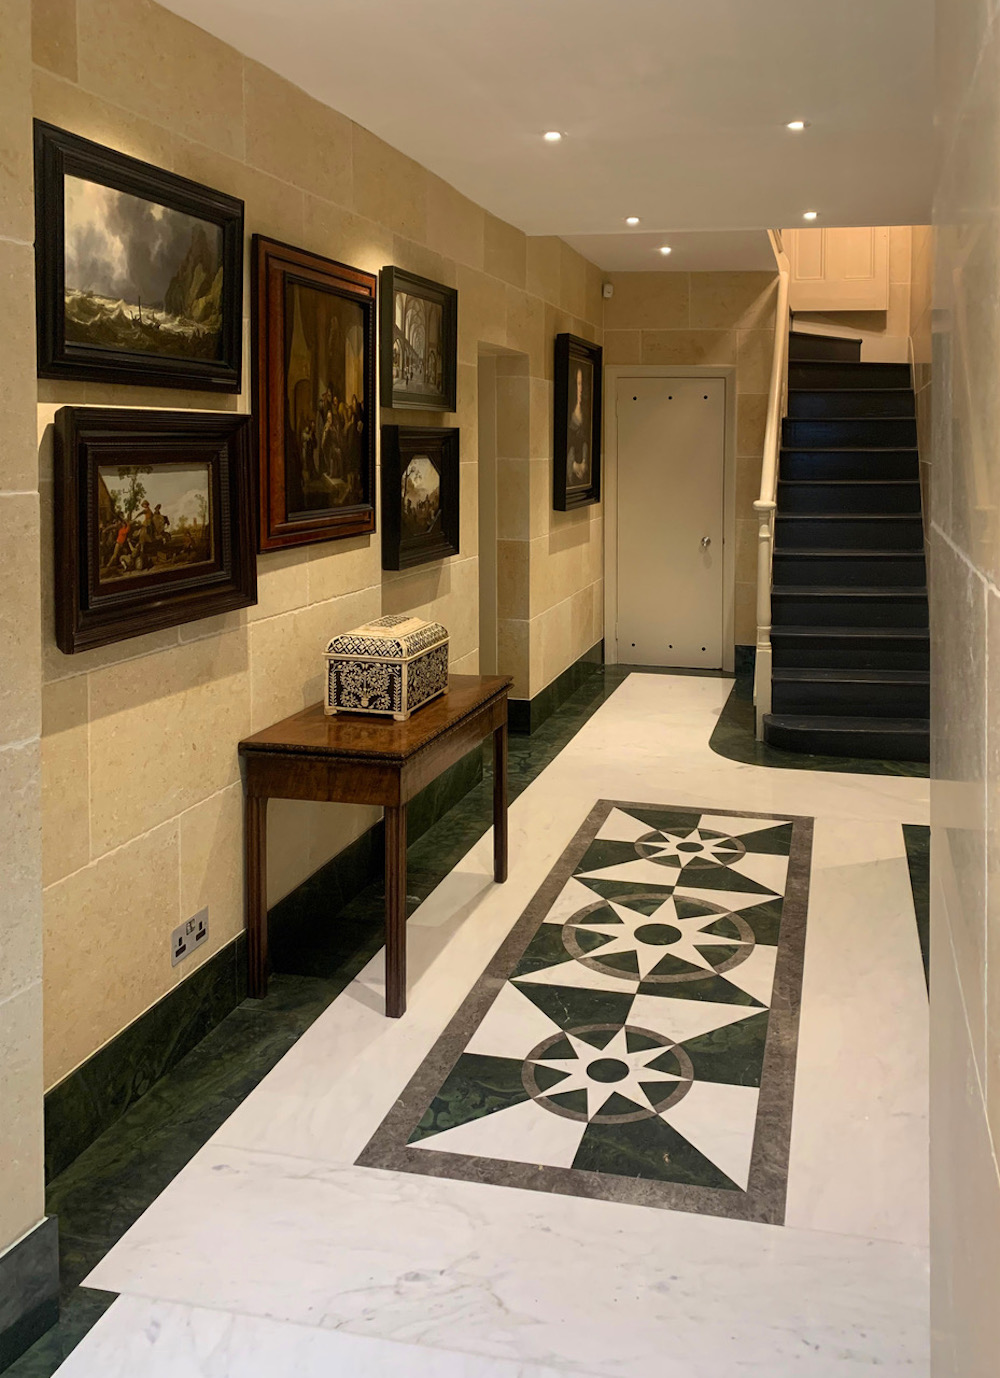 Image caption: A recent project, the basement of a house. The driver for this project was the client's artwork, which can be seen on the walls.